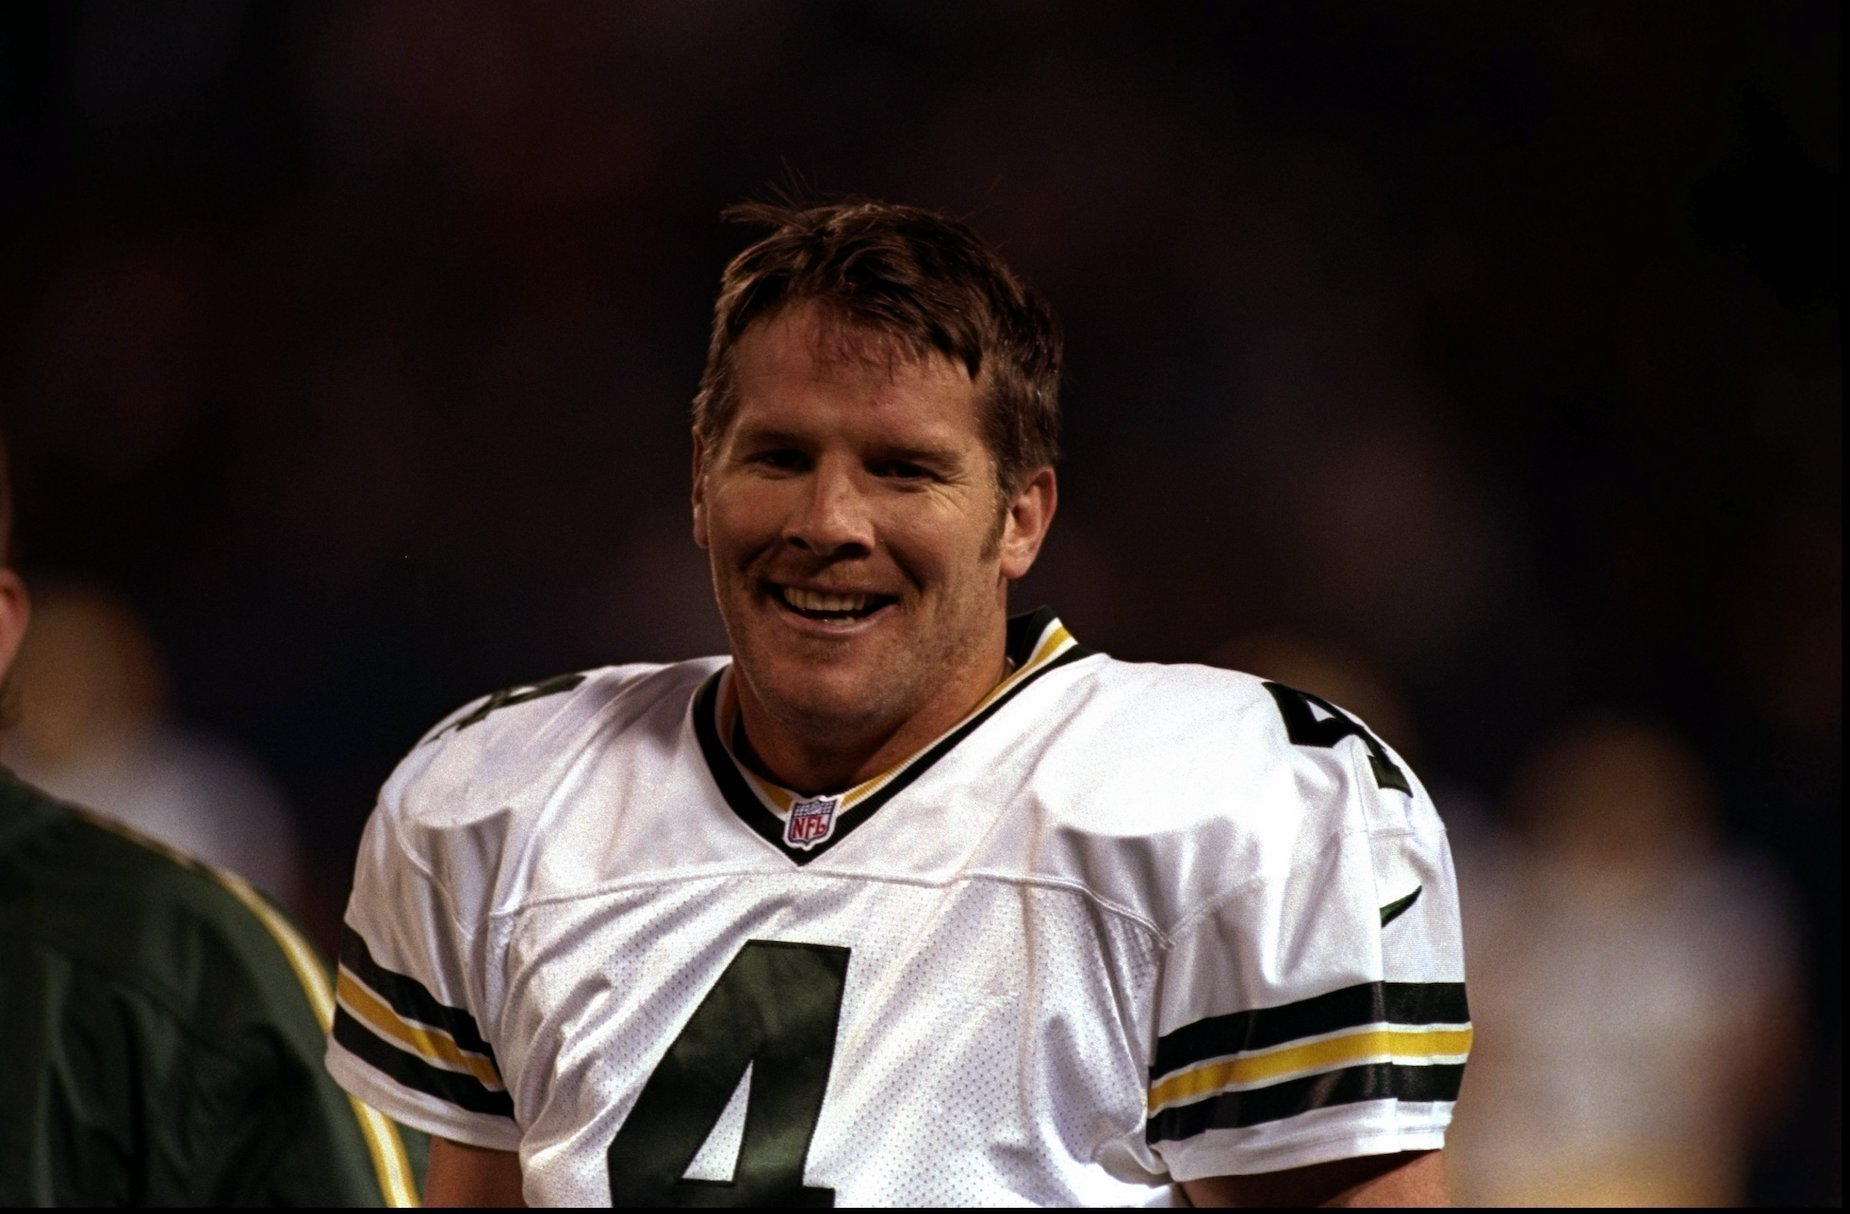 For all of on-field abilities, members of the Green Bay Packers knew he as also a 'shower bandit'